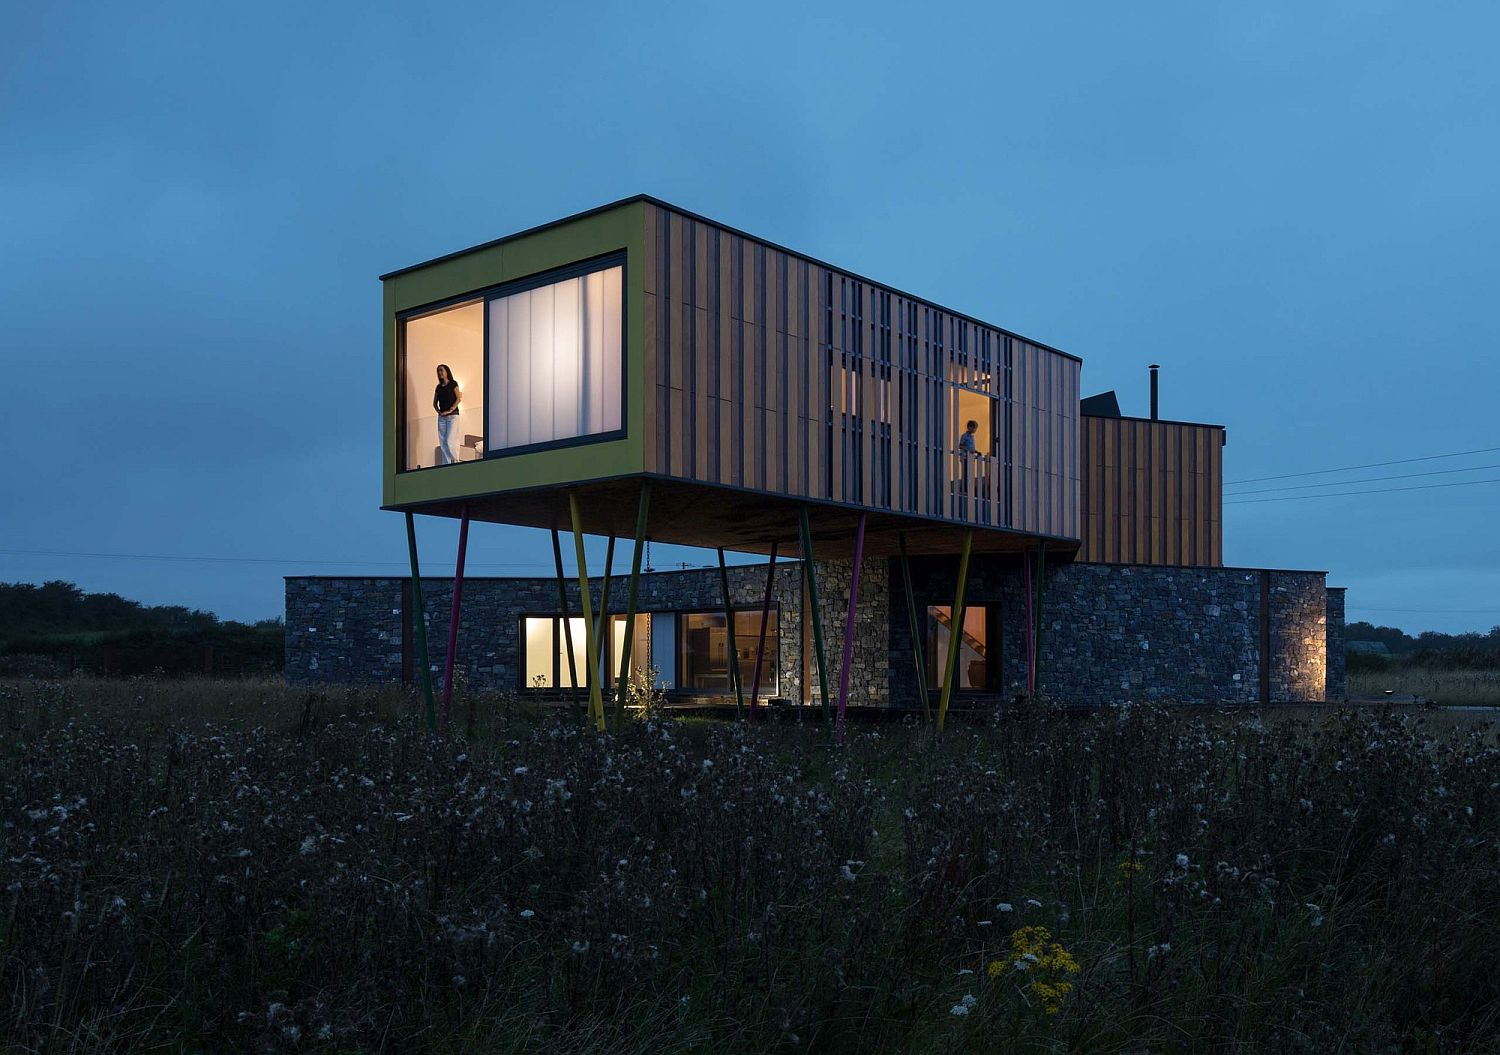 Cantilevered upper level of the house overlooking the meadows in the distance